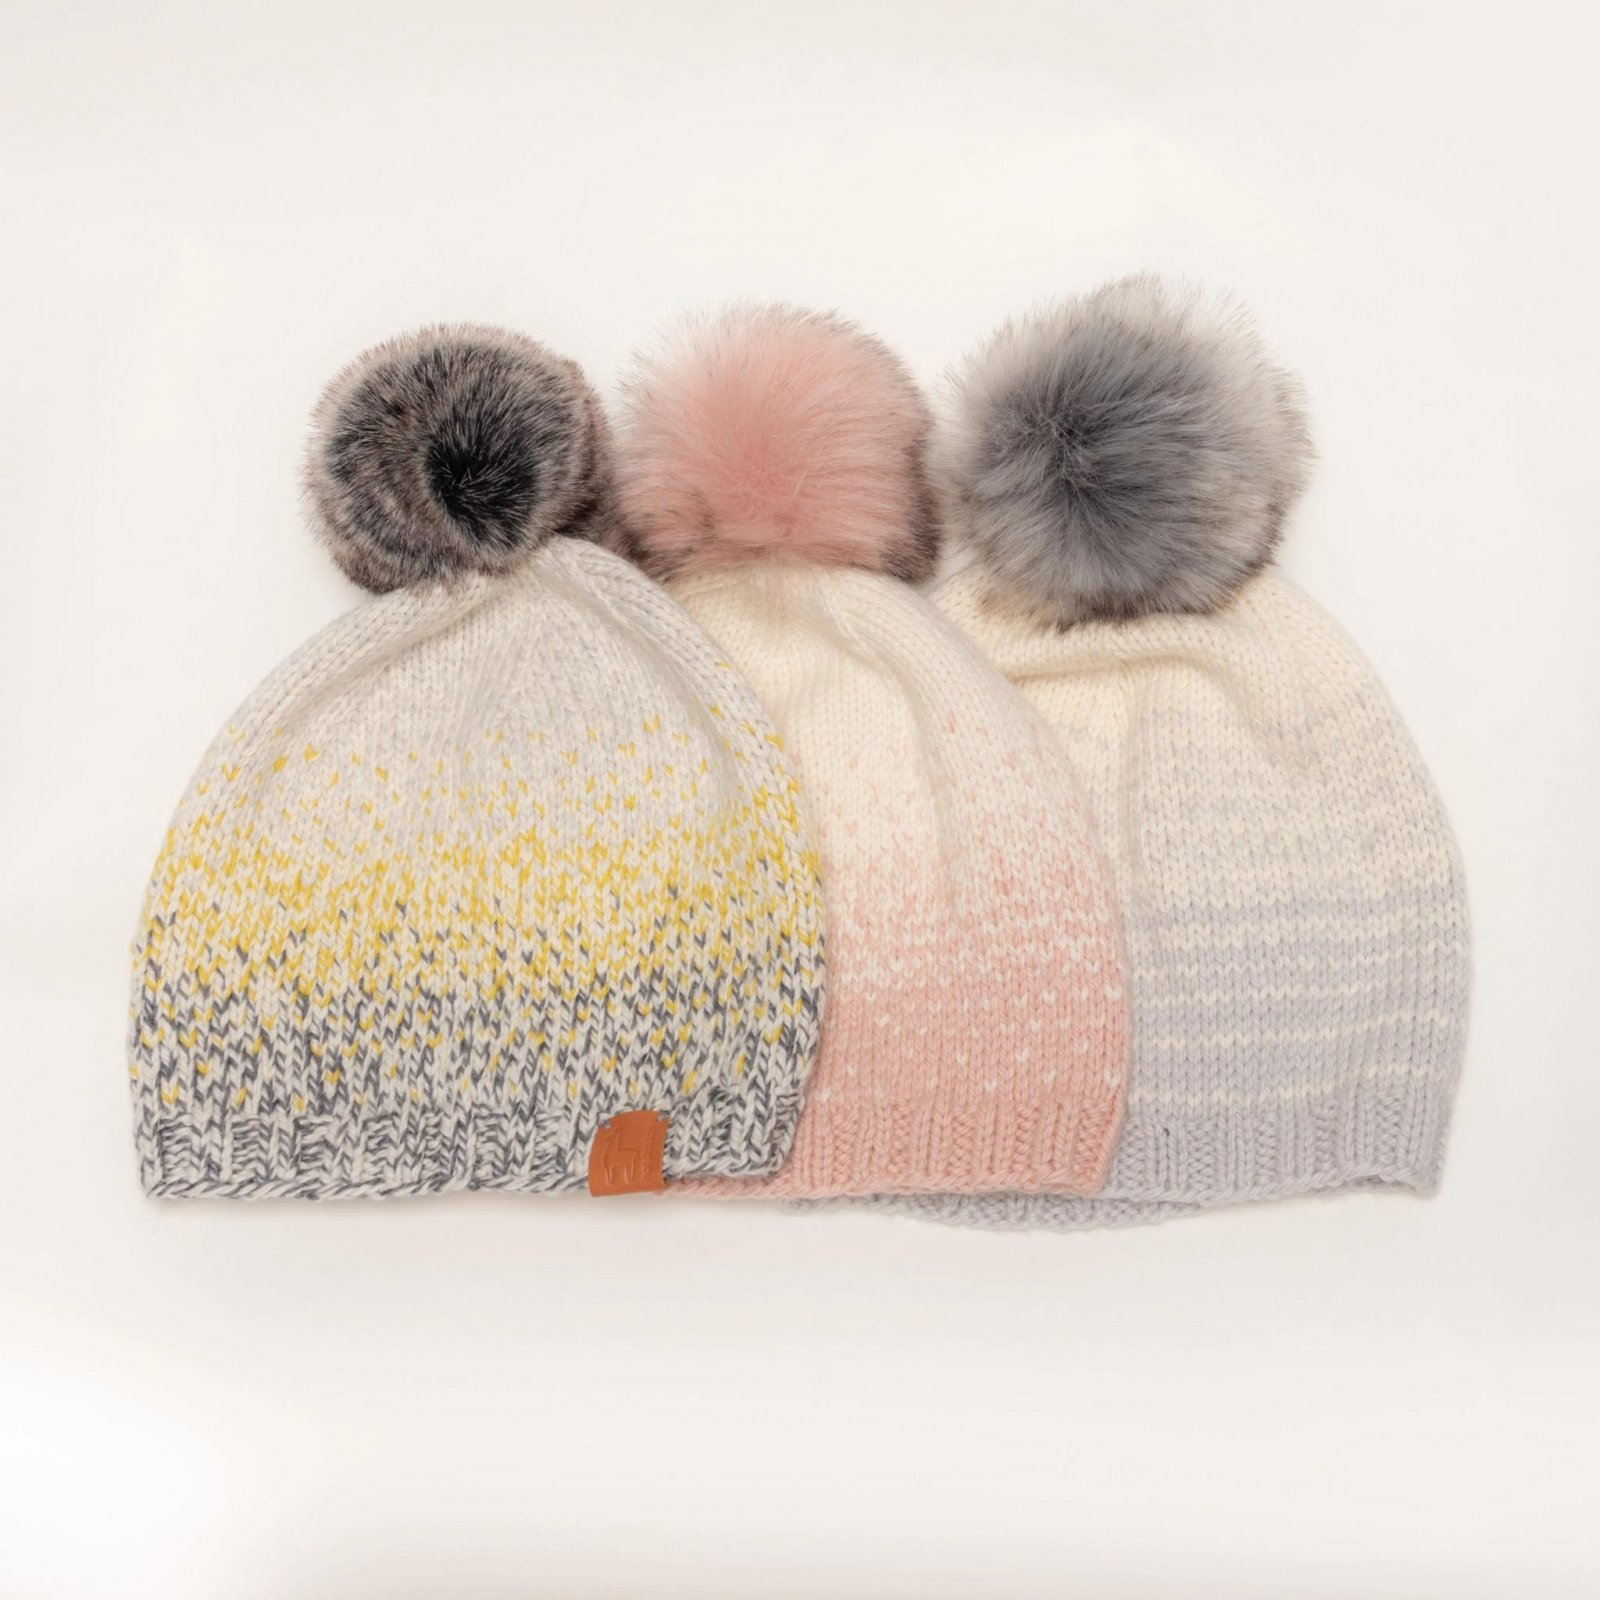 Ikigai Stardust Hat Kit with Pom Pom - Cloudy